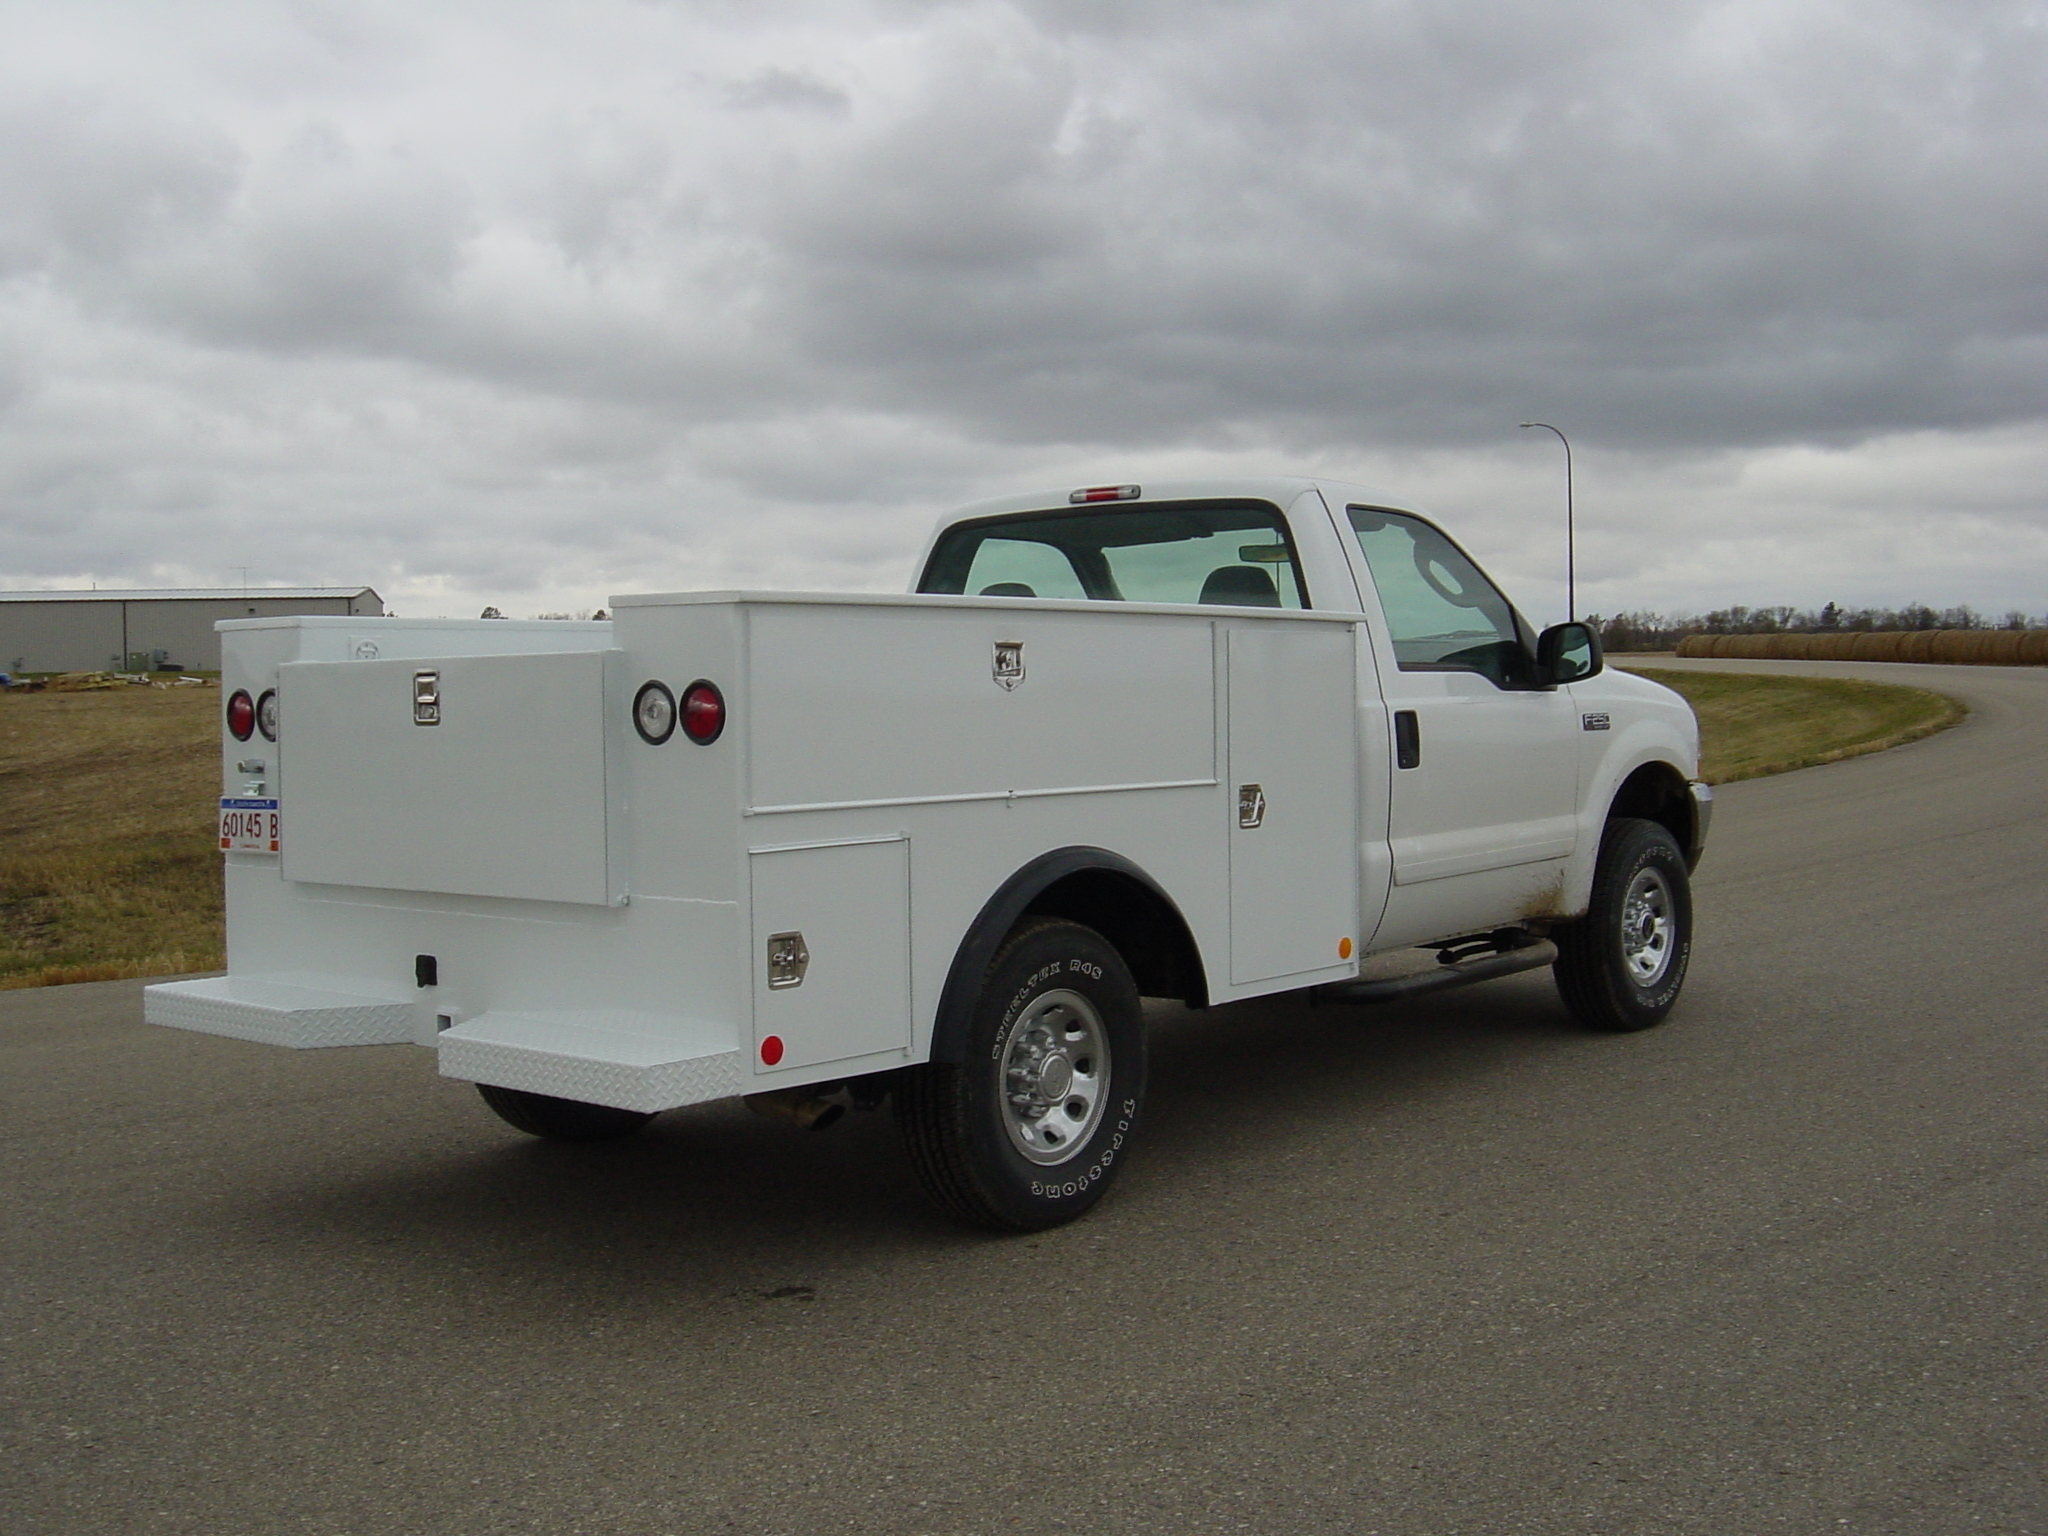 Dakota service bodies for fleets in OKC